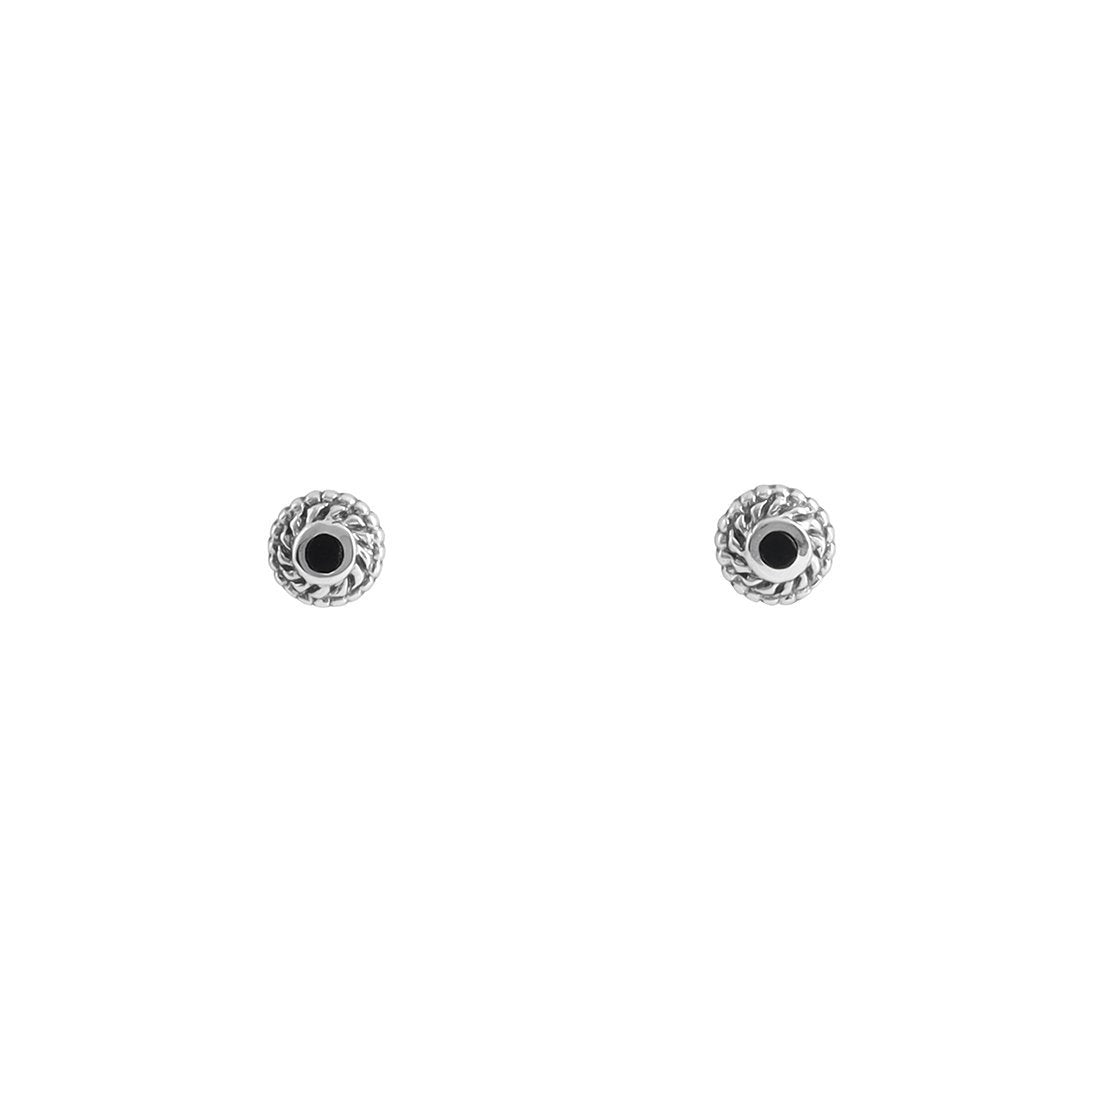 Midsummer Star Earrings Interwoven Onyx Portal Studs